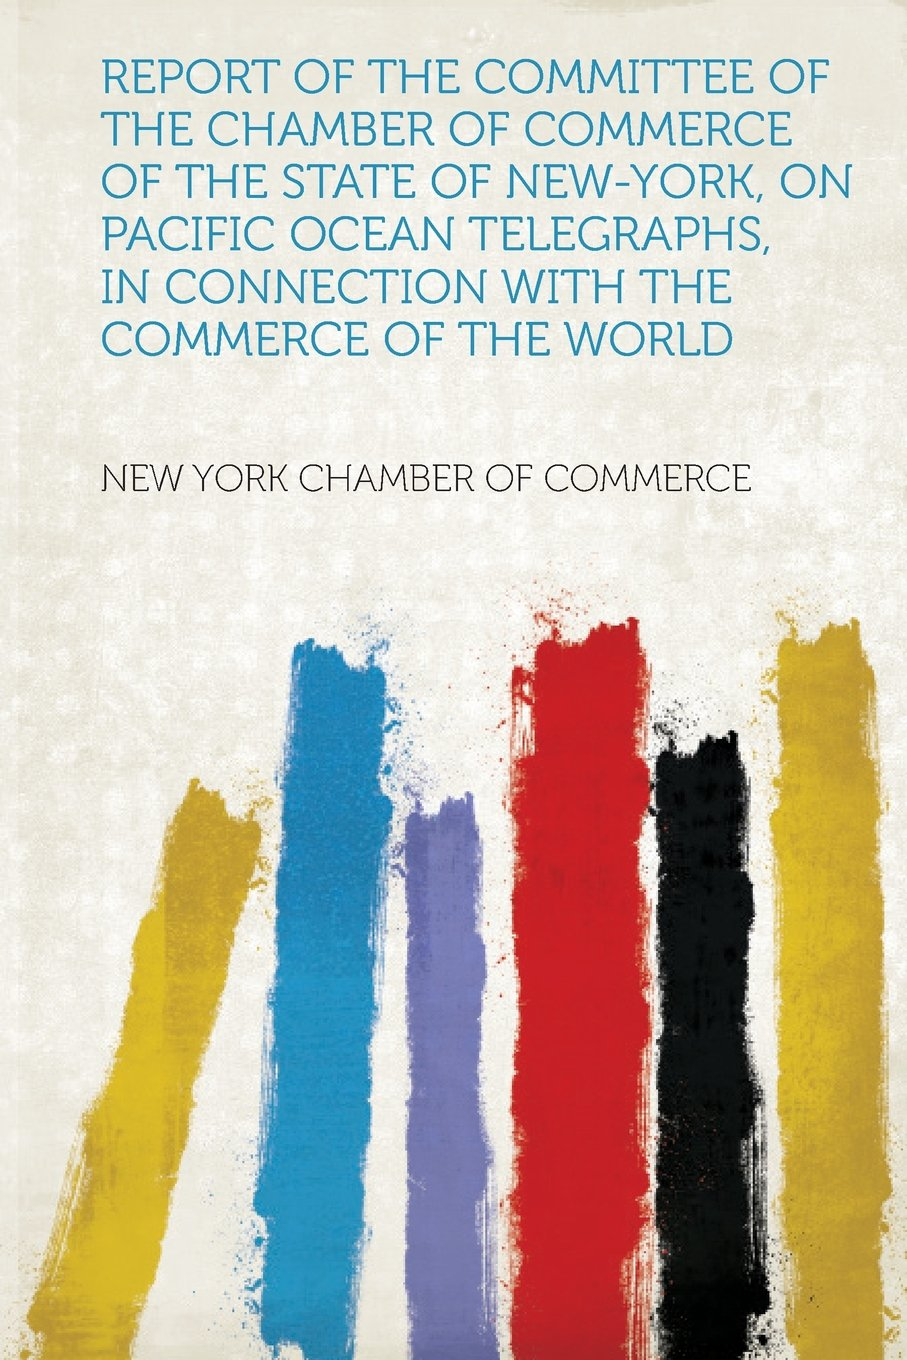 Download Report of the Committee of the Chamber of Commerce of the State of New-York, on Pacific Ocean Telegraphs, in Connection with the Commerce of the World PDF